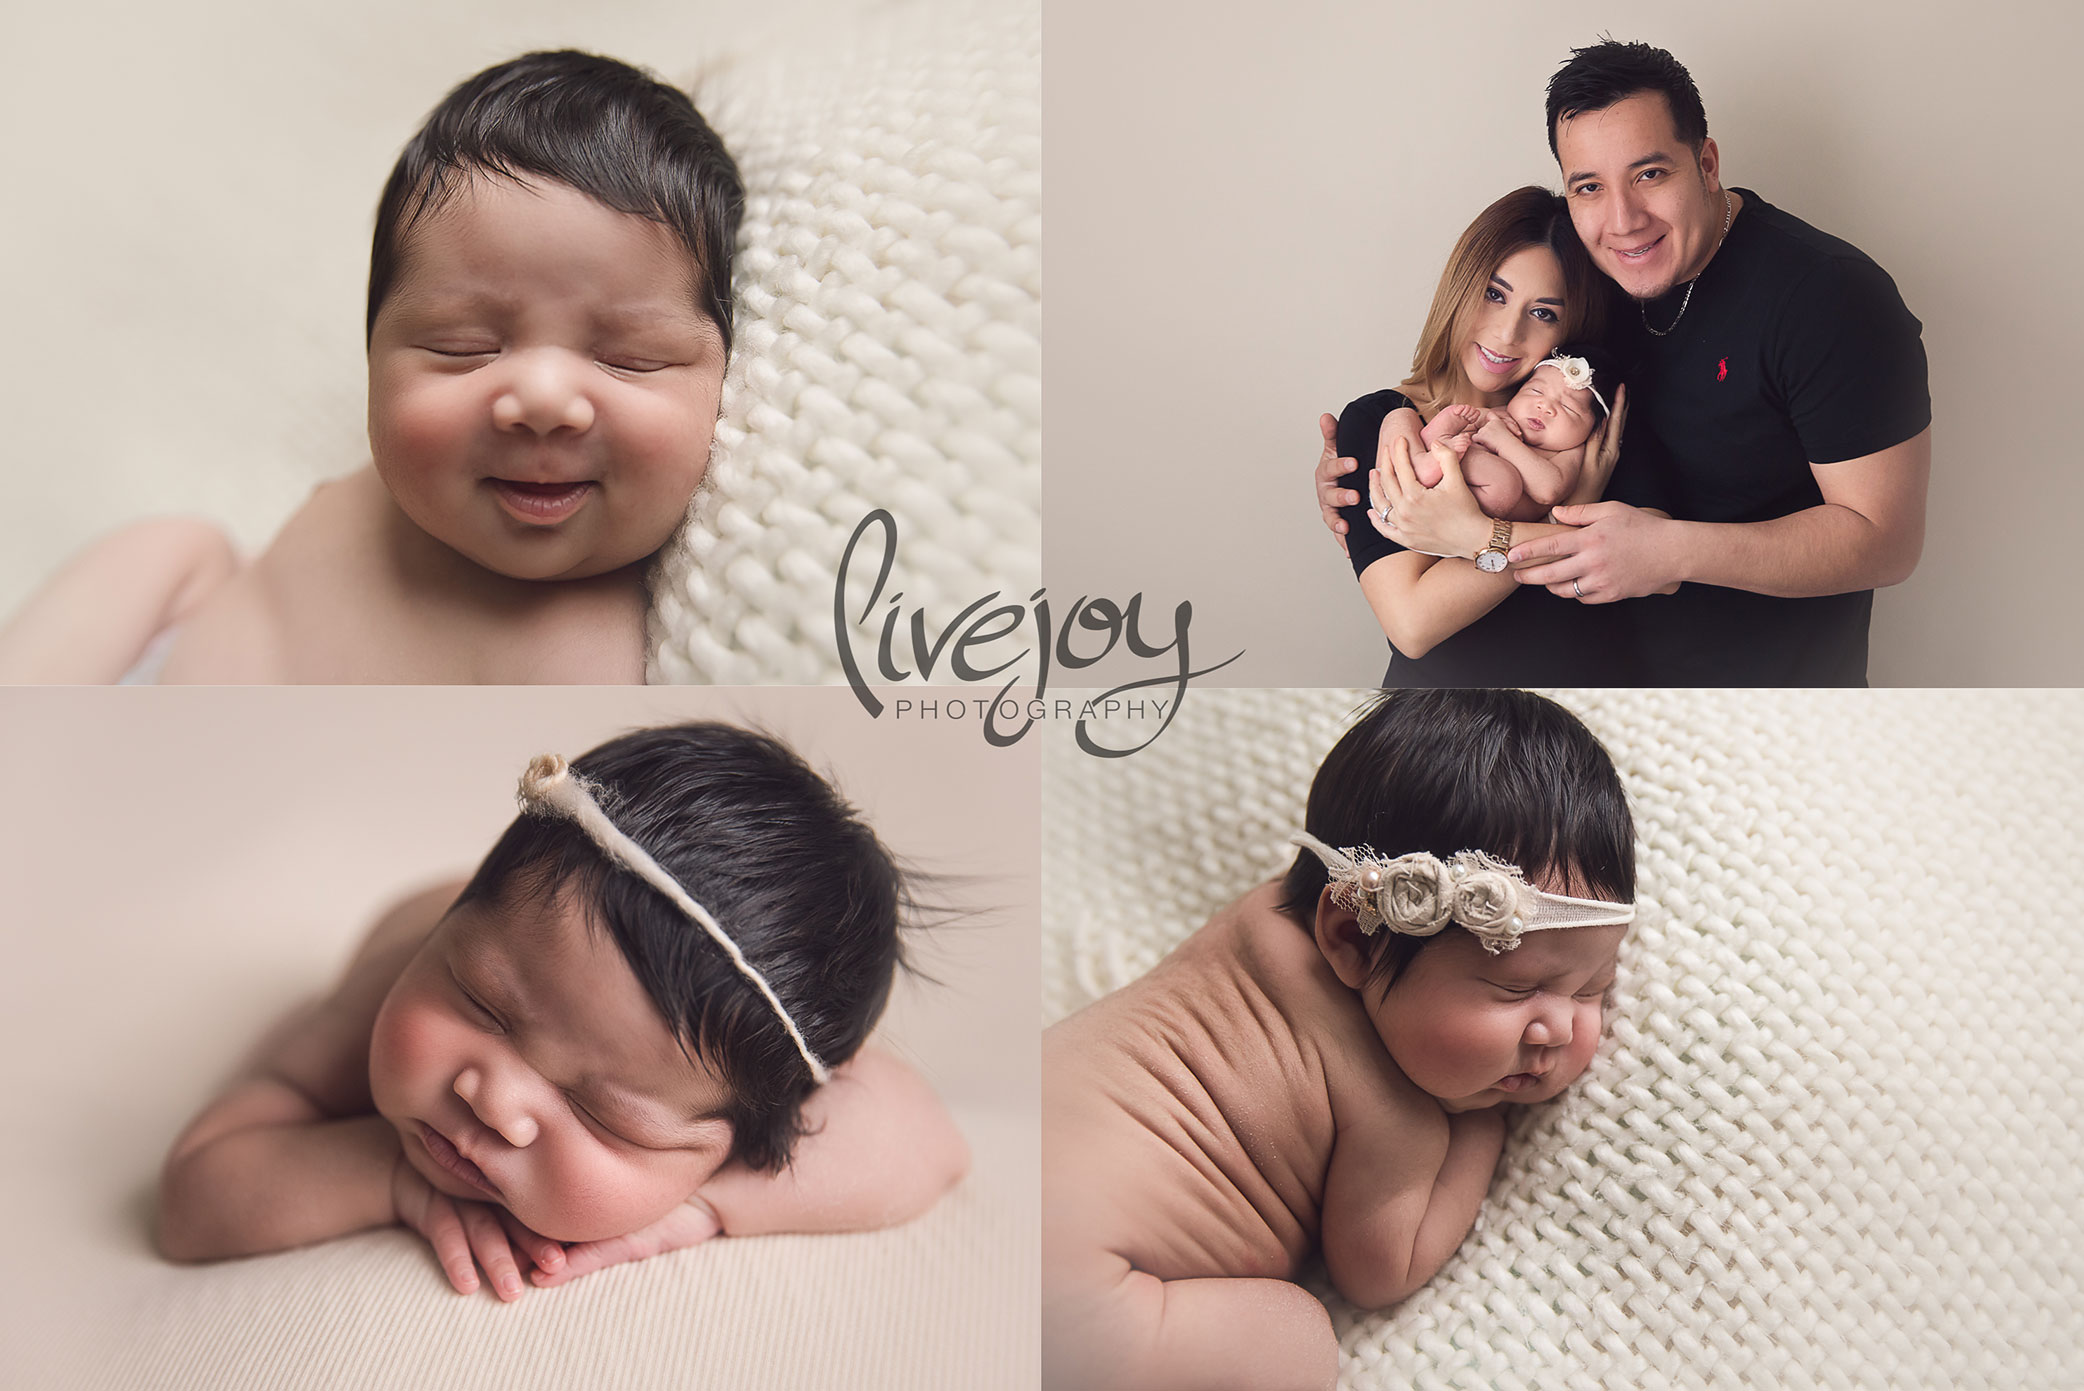 Baby Girl Newborn Photos | Oregon | LiveJoy Photography